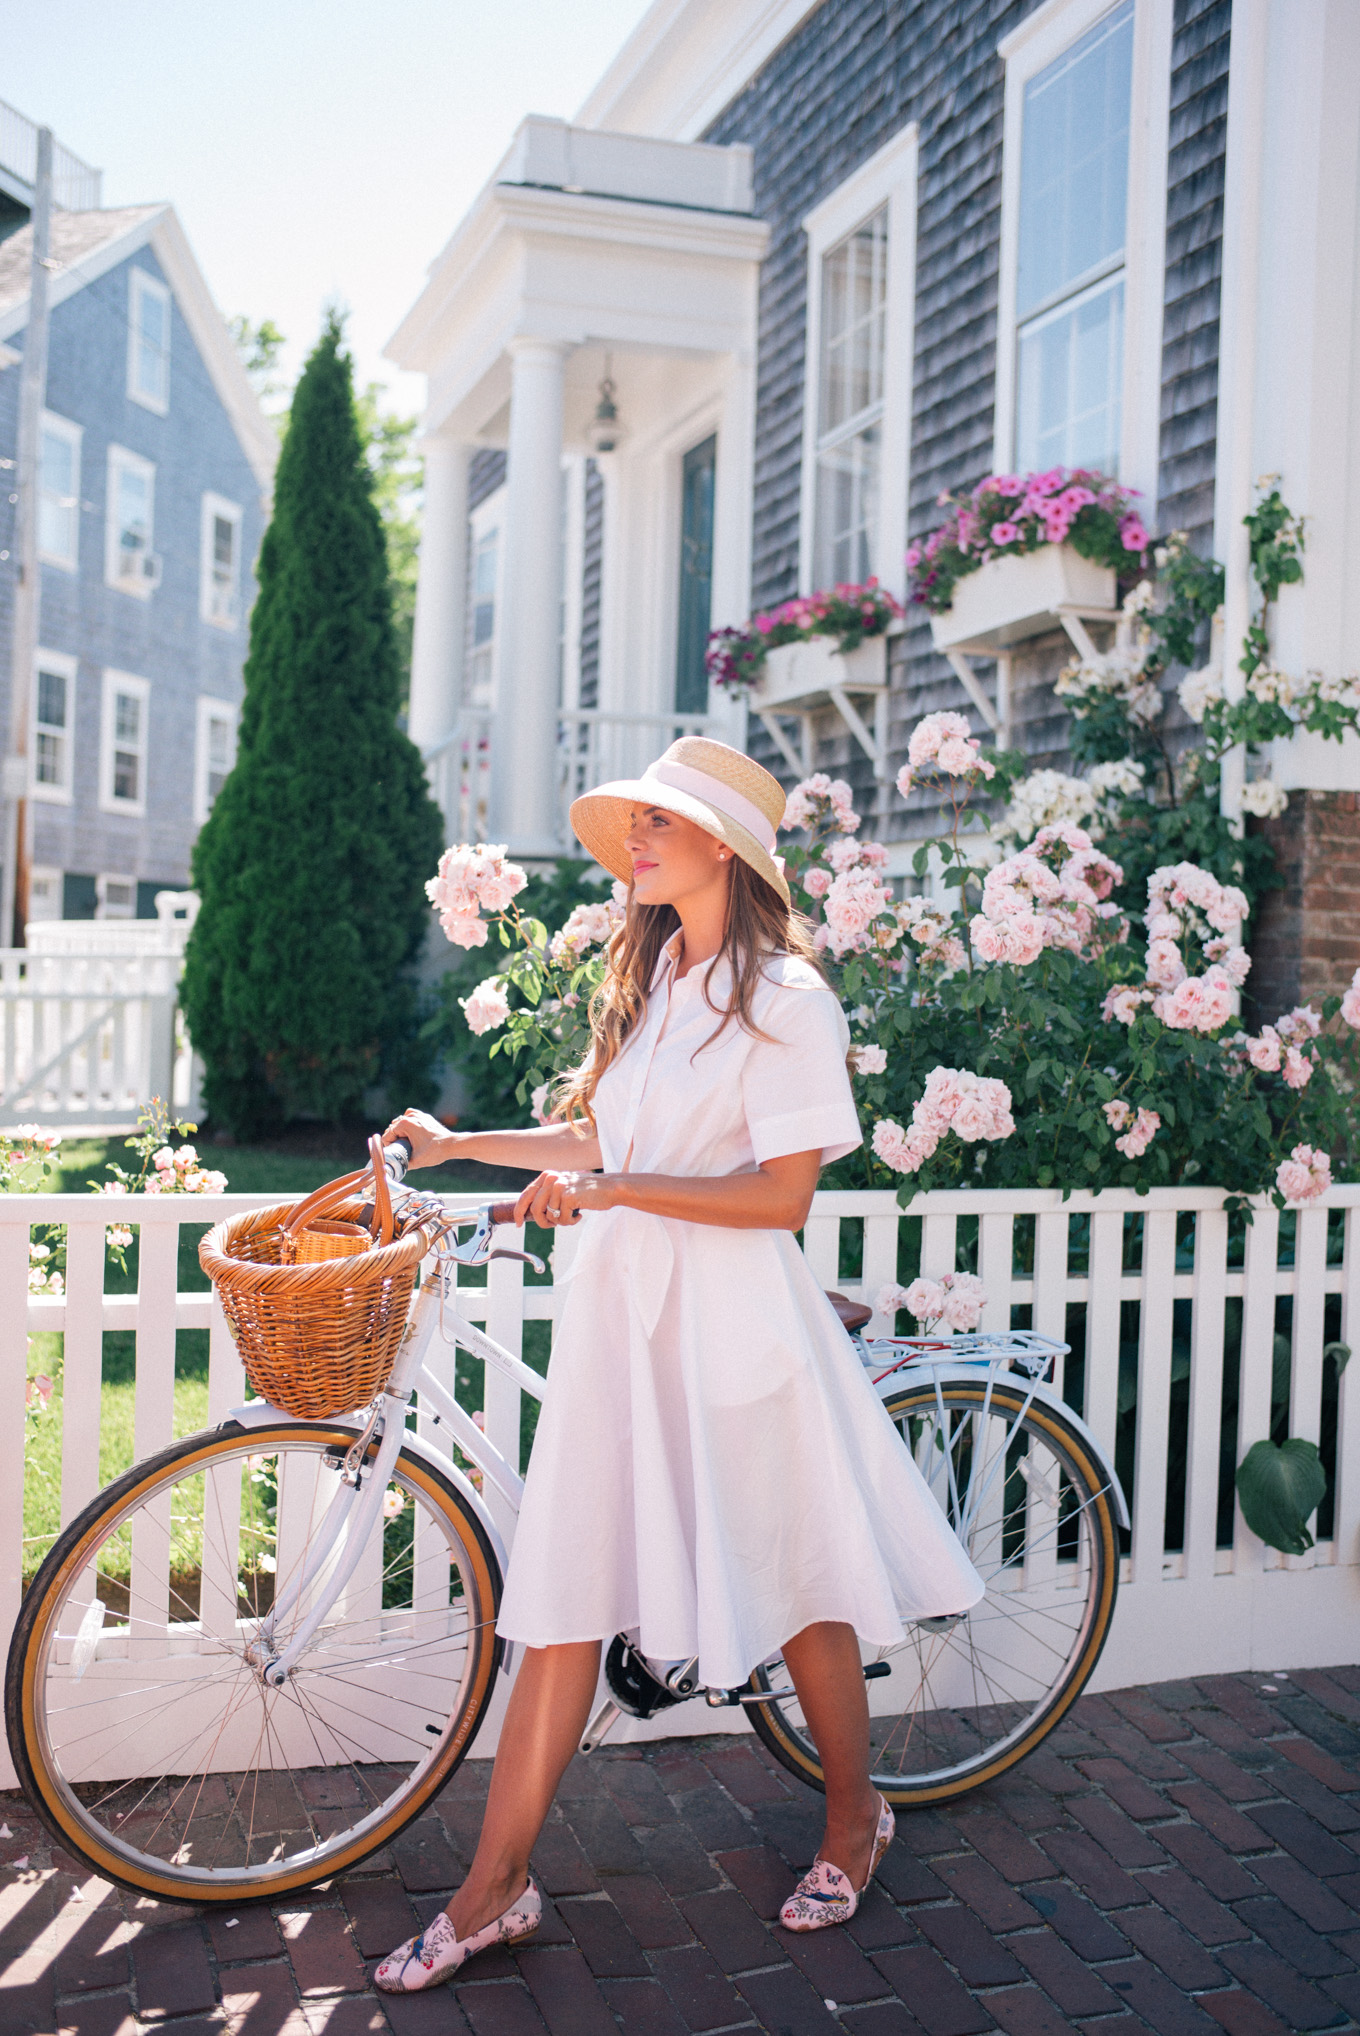 gmg-a-week-on-nantucket-part-two-1009242